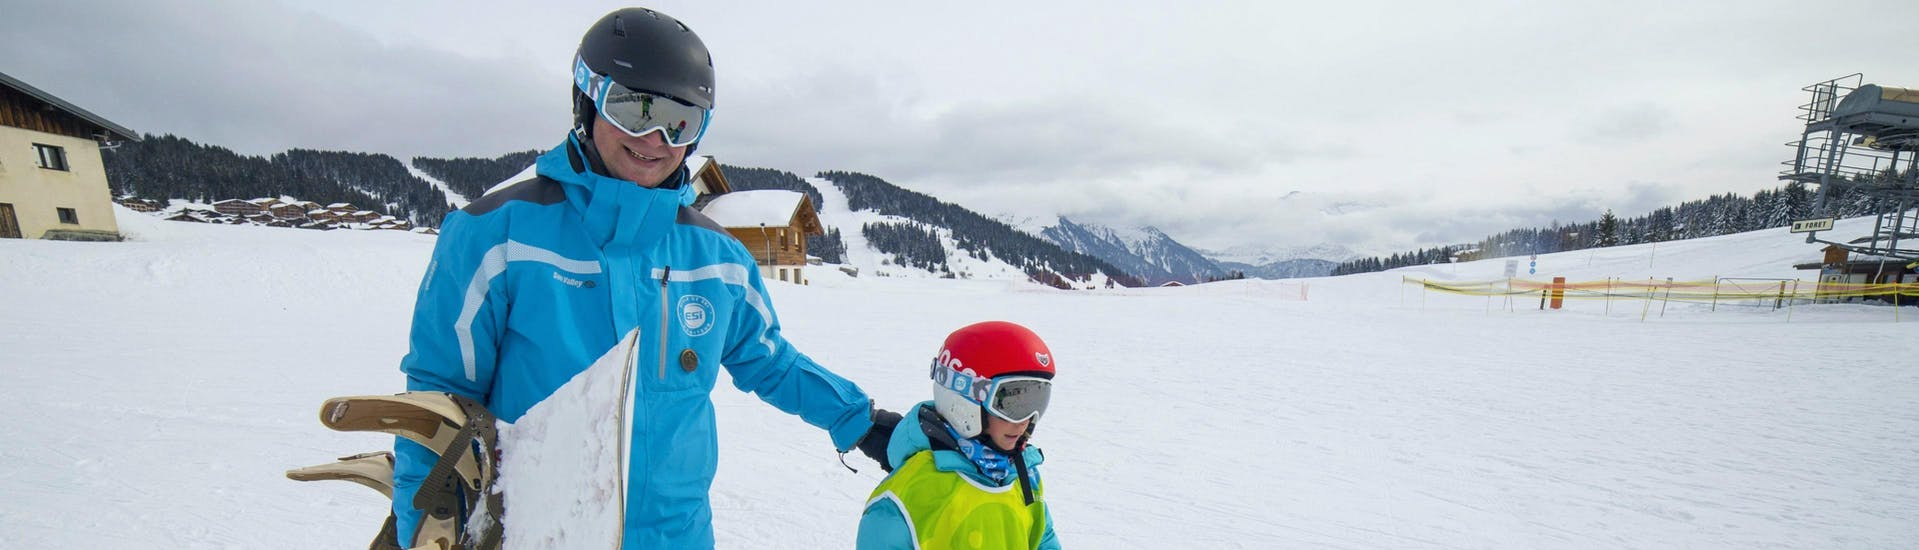 A snowboarder is walking besides their snowboard instructor from the ski school ESI Font Romeu at the bottom of the snowy slopes during their  Snowboarding Lessons for Kids & Adults - Low Season.